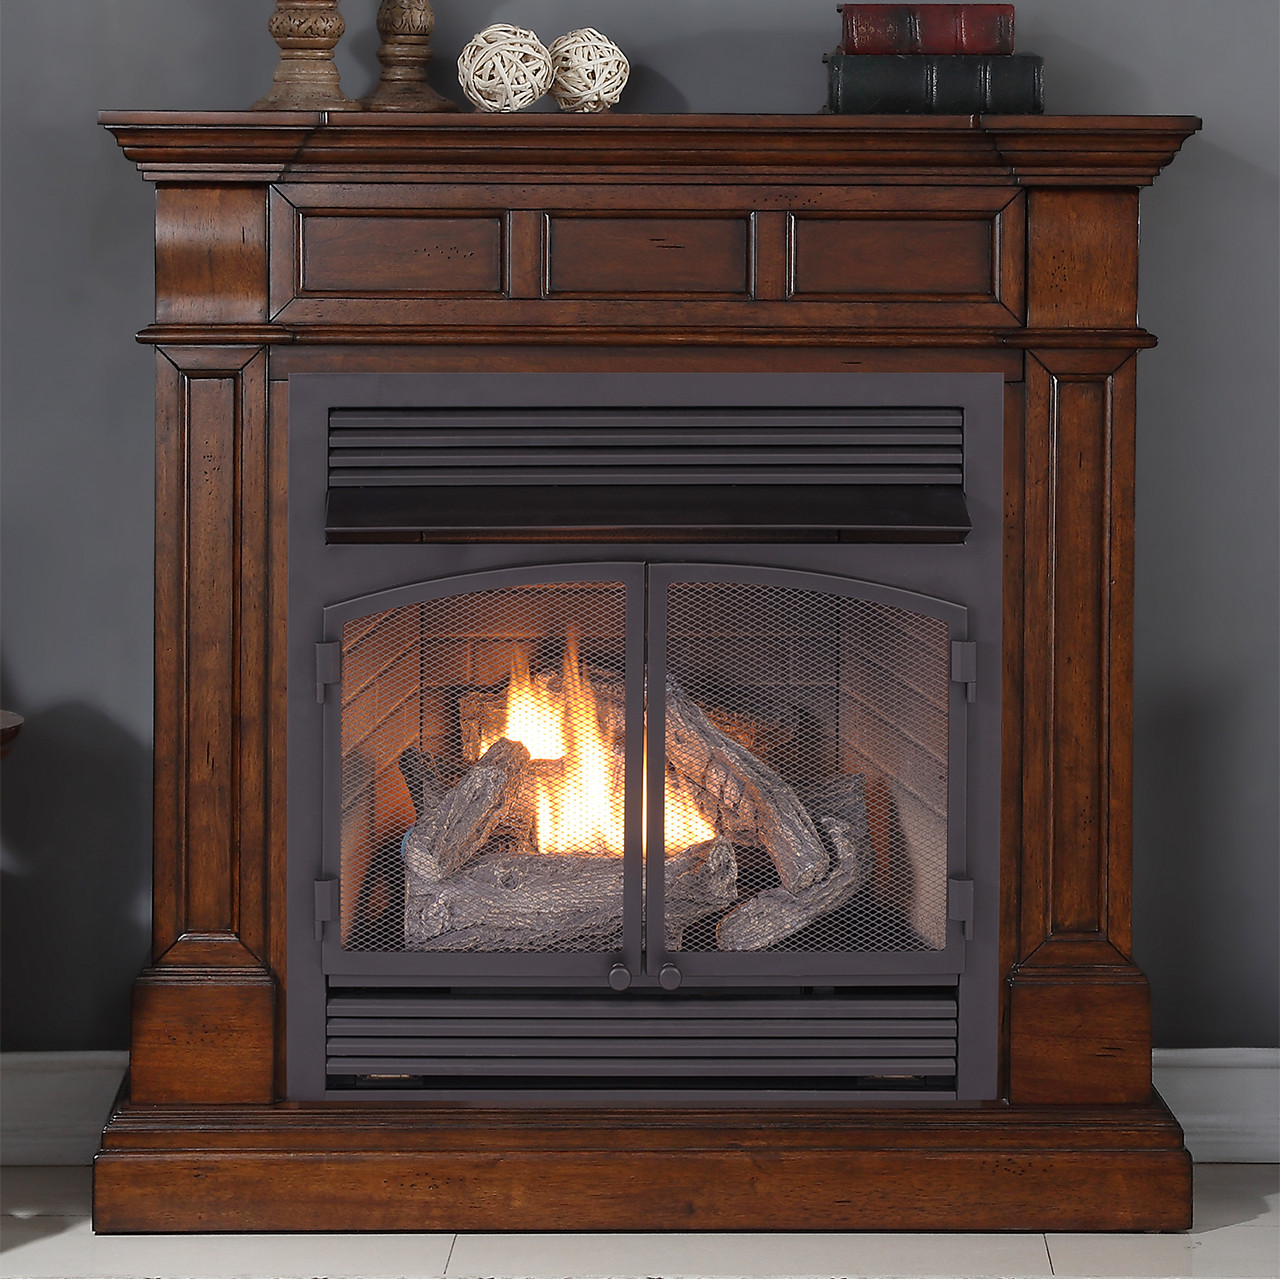 duluth forge dual fuel ventless gas fireplace 26 000 btu remote